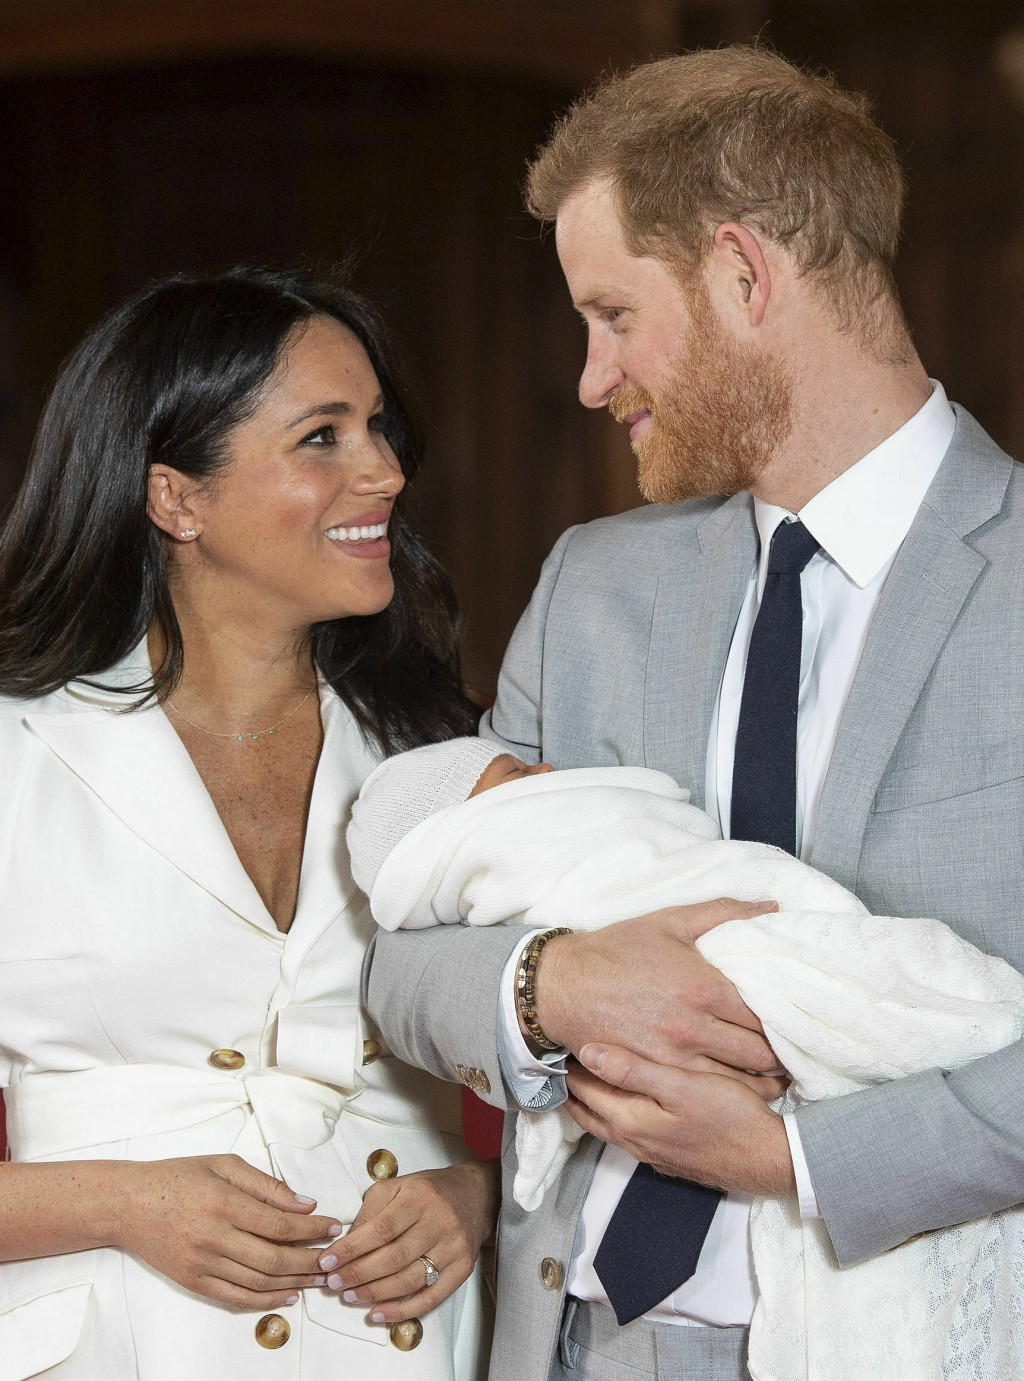 FILE - In this Wednesday, May 8, 2019 file photo, Britain's Prince Harry and Meghan, Duchess of Sussex smile during a photocall with their newborn son